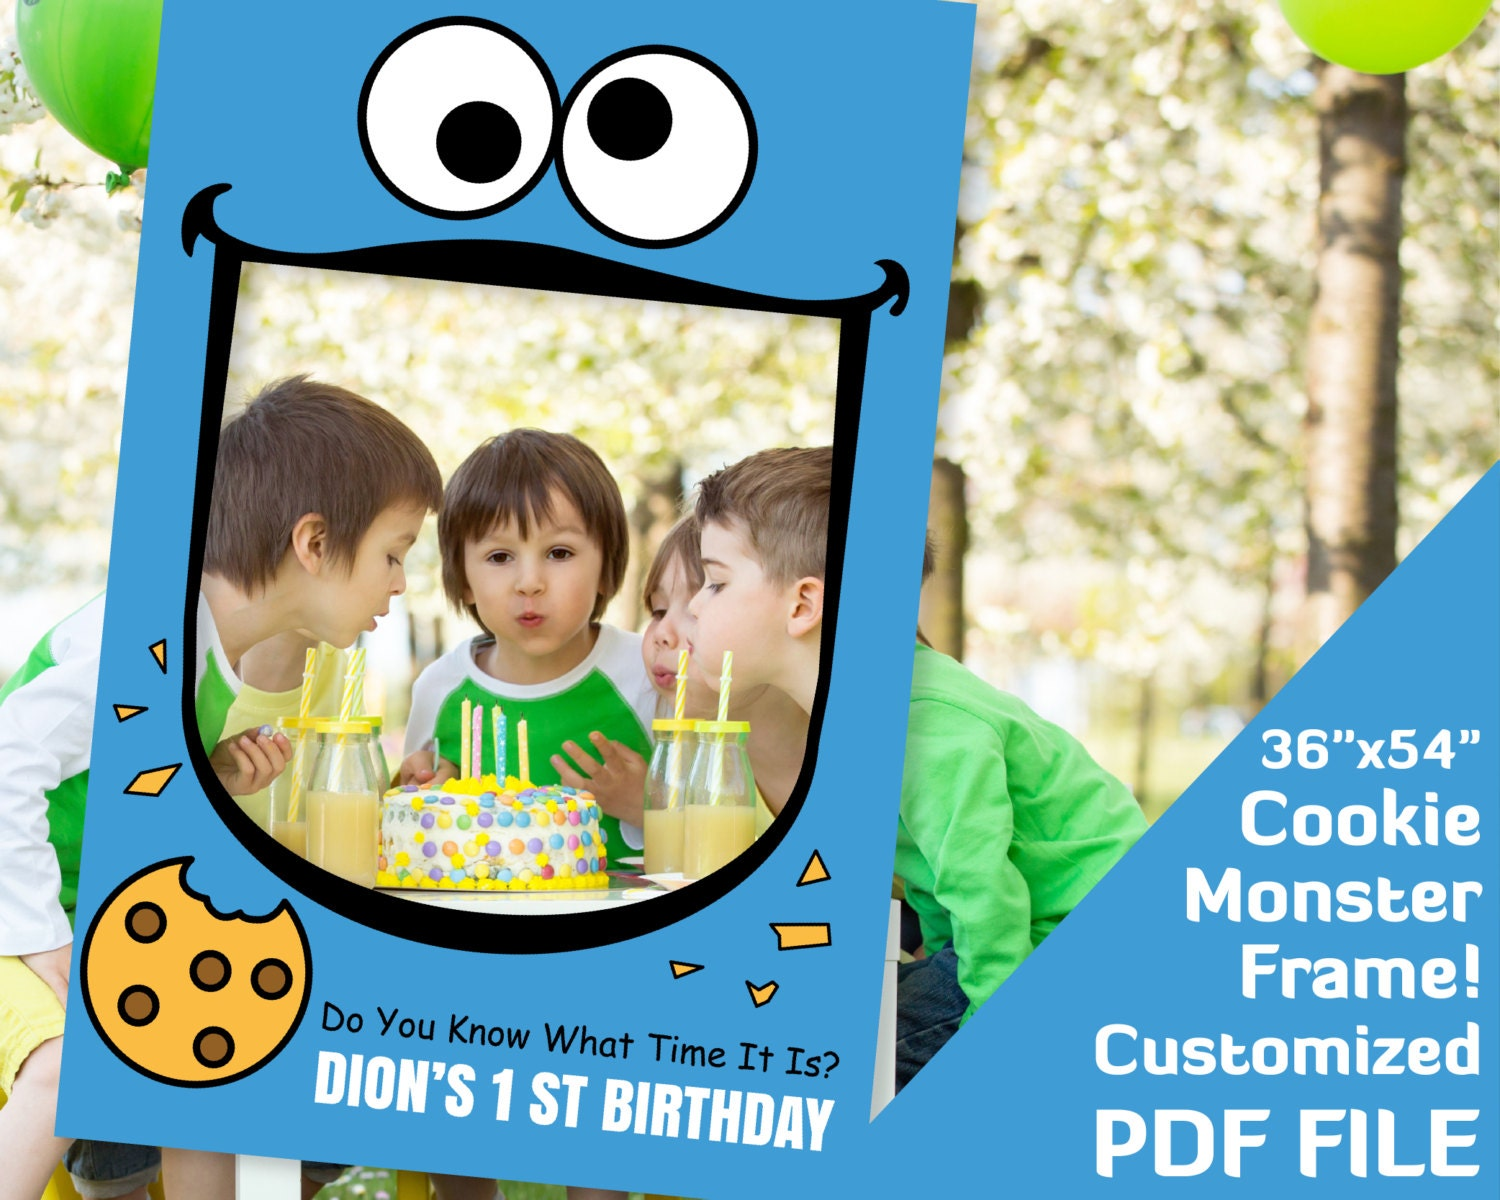 Cookie Monster first birthday frame cookie monster party